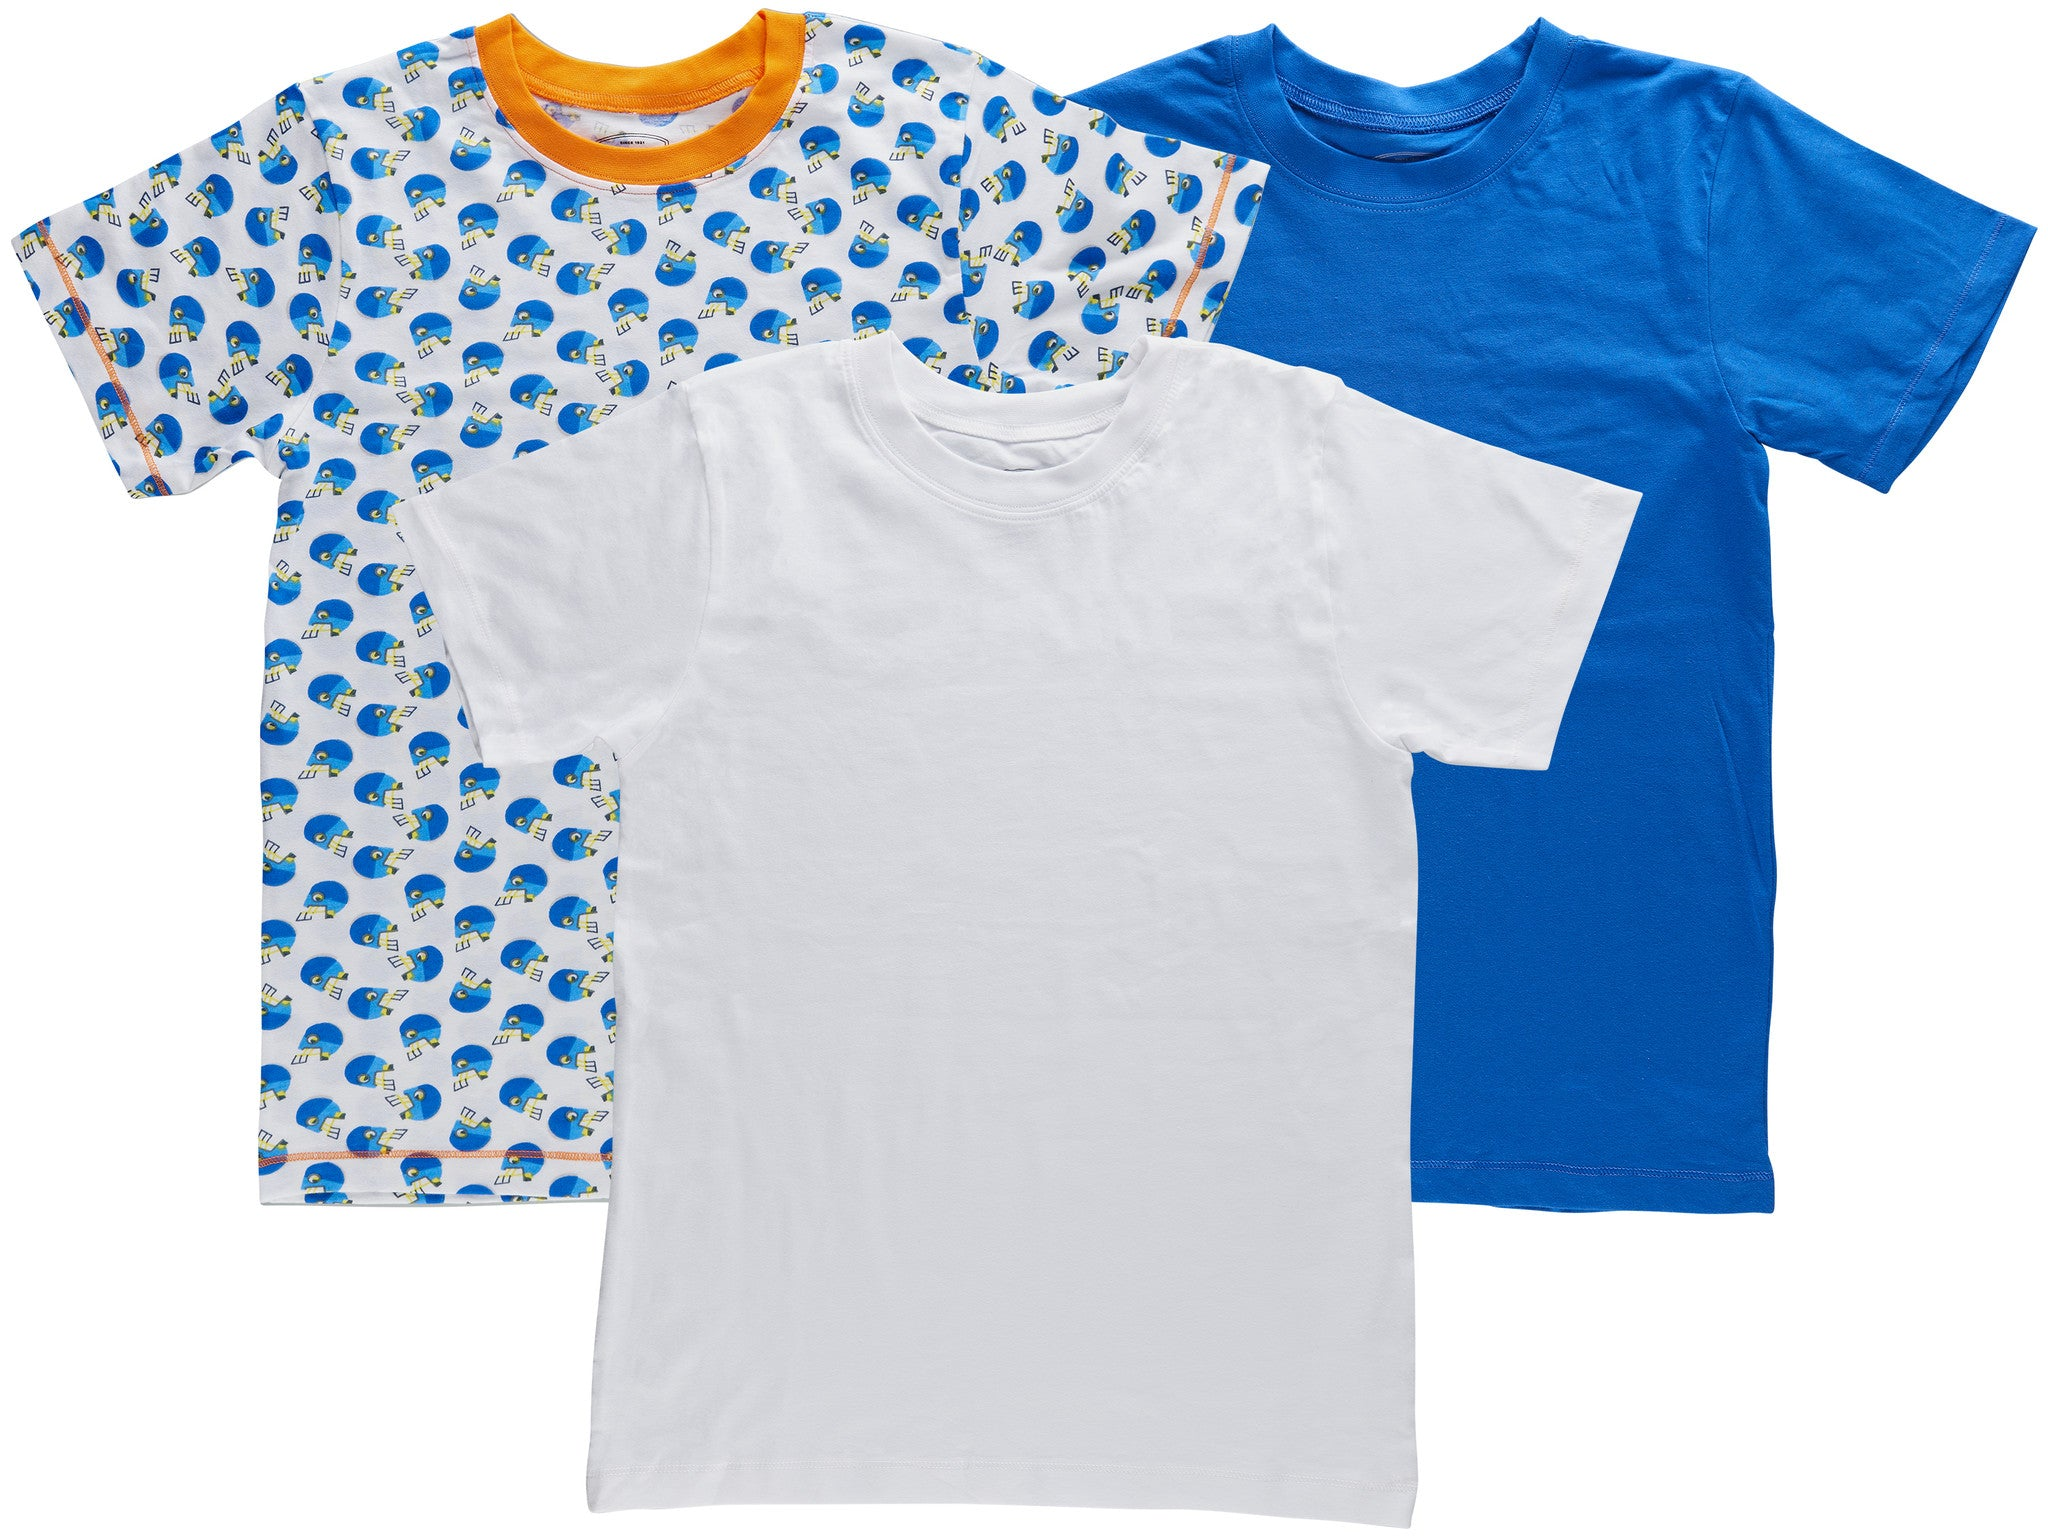 3-Pack Football Stars 100% Cotton Fashion Printed T-Shirts